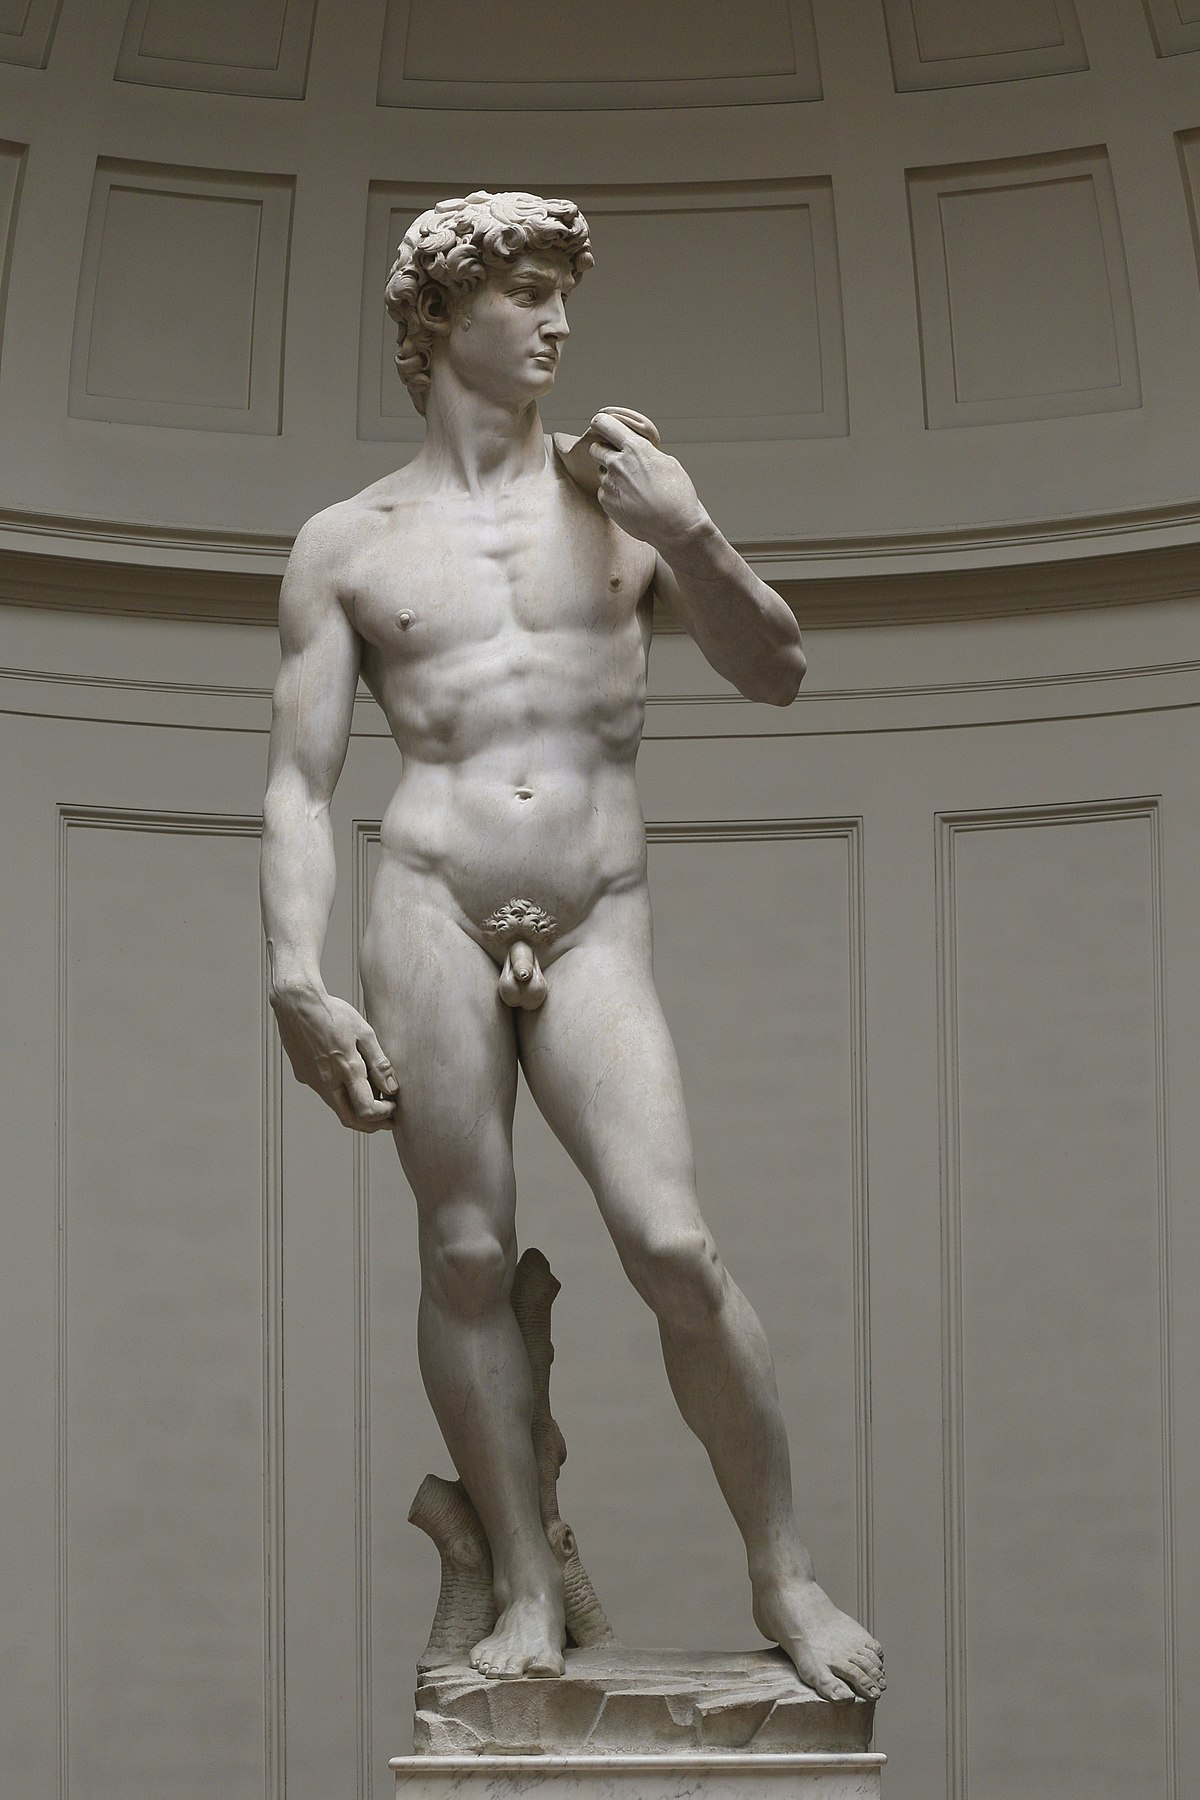 https://upload.wikimedia.org/wikipedia/commons/thumb/a/a0/%27David%27_by_Michelangelo_Fir_JBU002.jpg/1200px-%27David%27_by_Michelangelo_Fir_JBU002.jpg